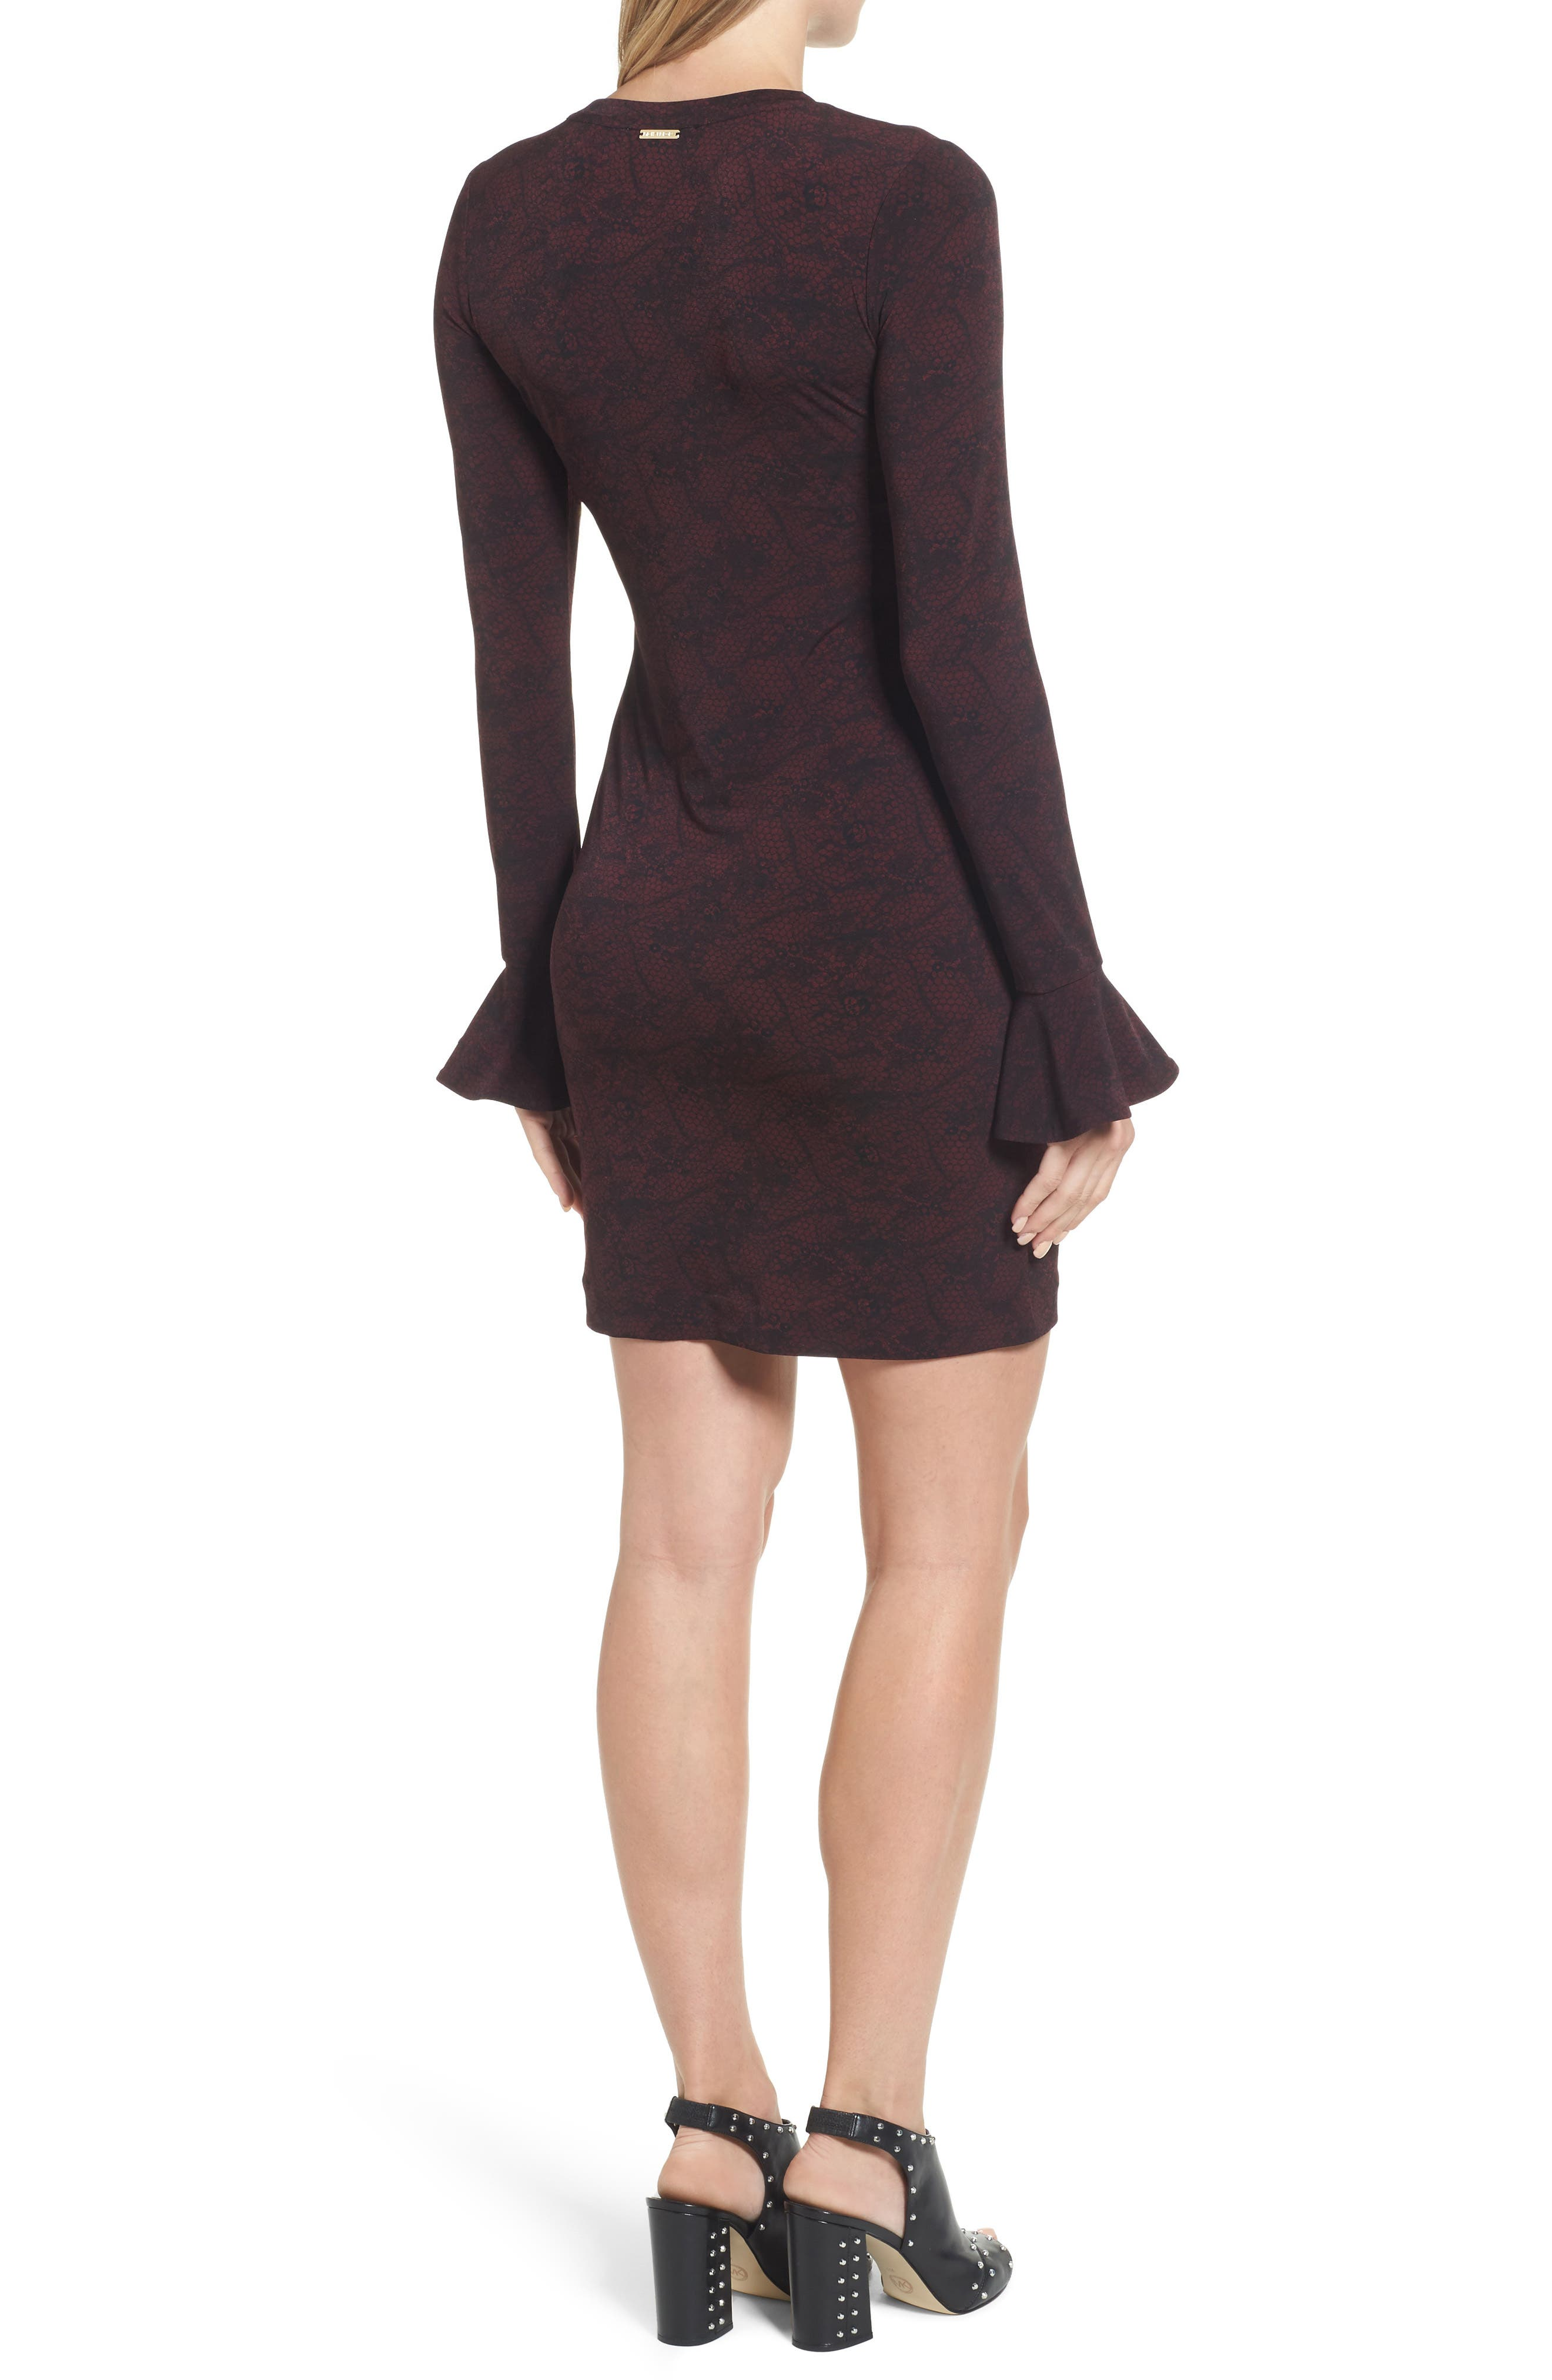 Floral Mesh Dress,                             Alternate thumbnail 2, color,                             Merlot/Black